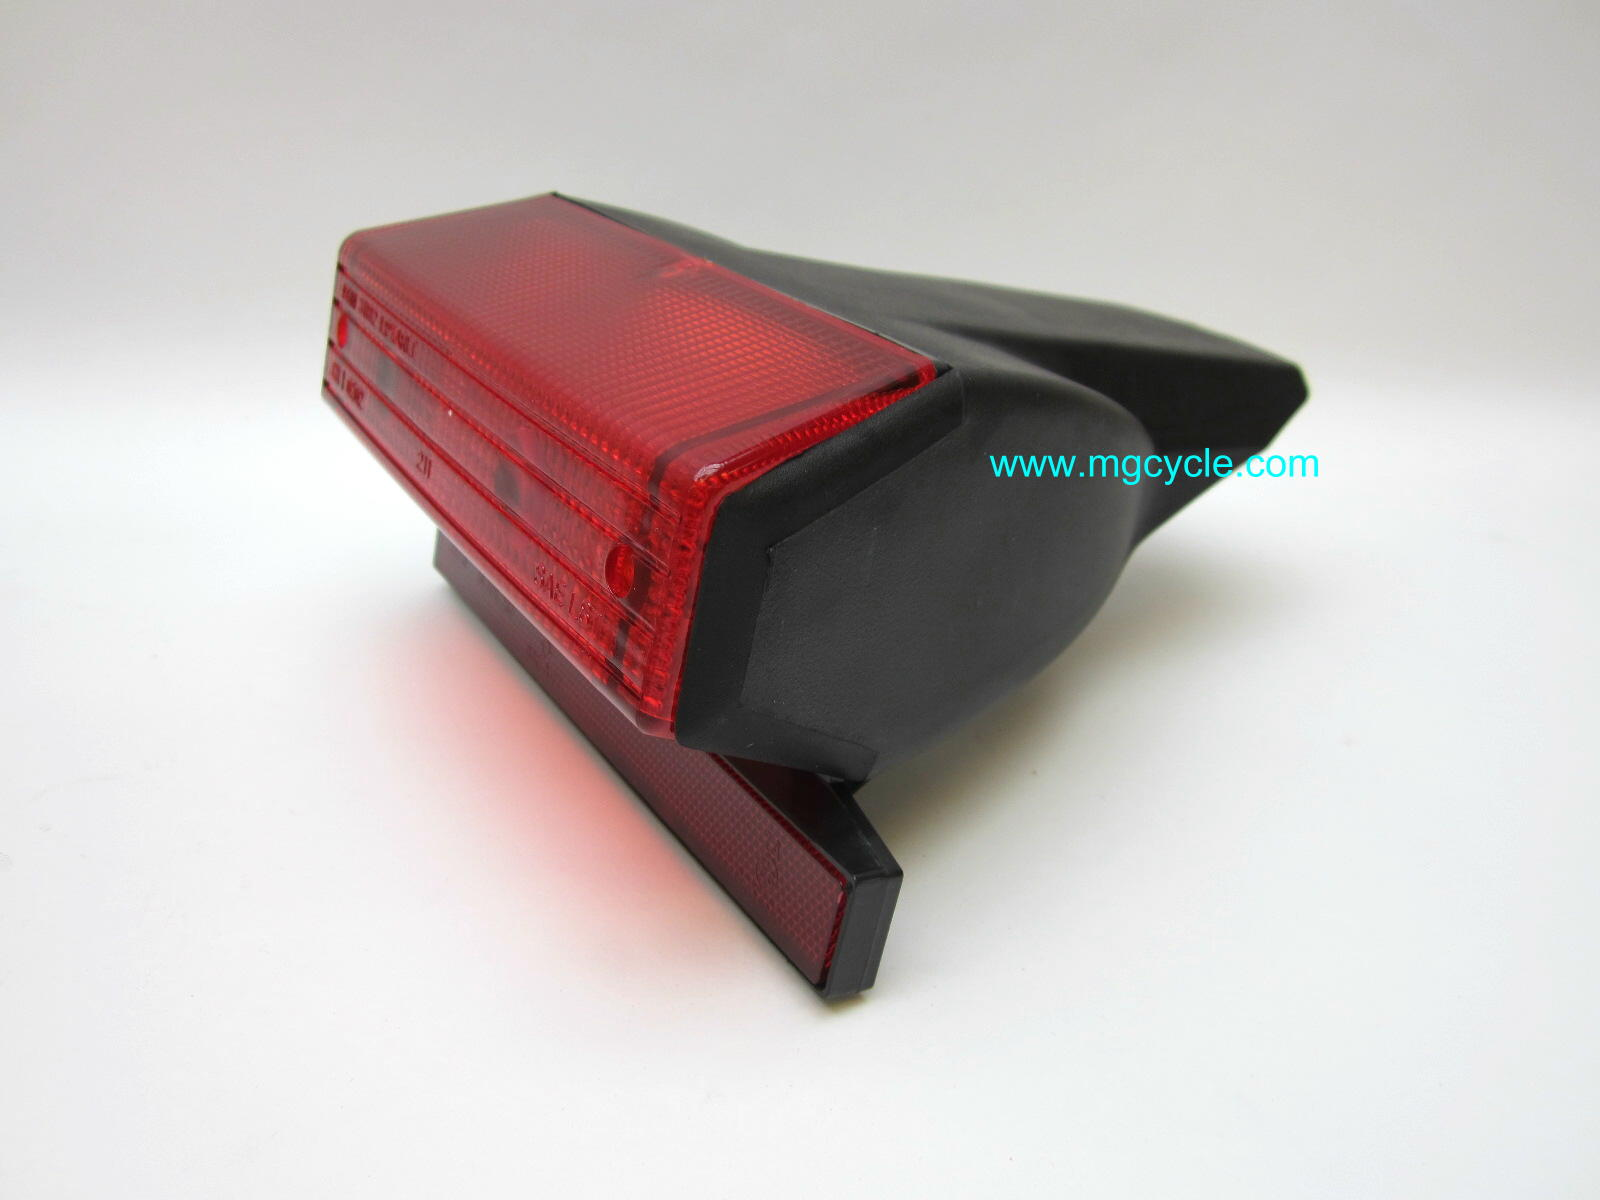 Tail light LeMans I/2 CX SP V50 2/3 Monza GU19740900